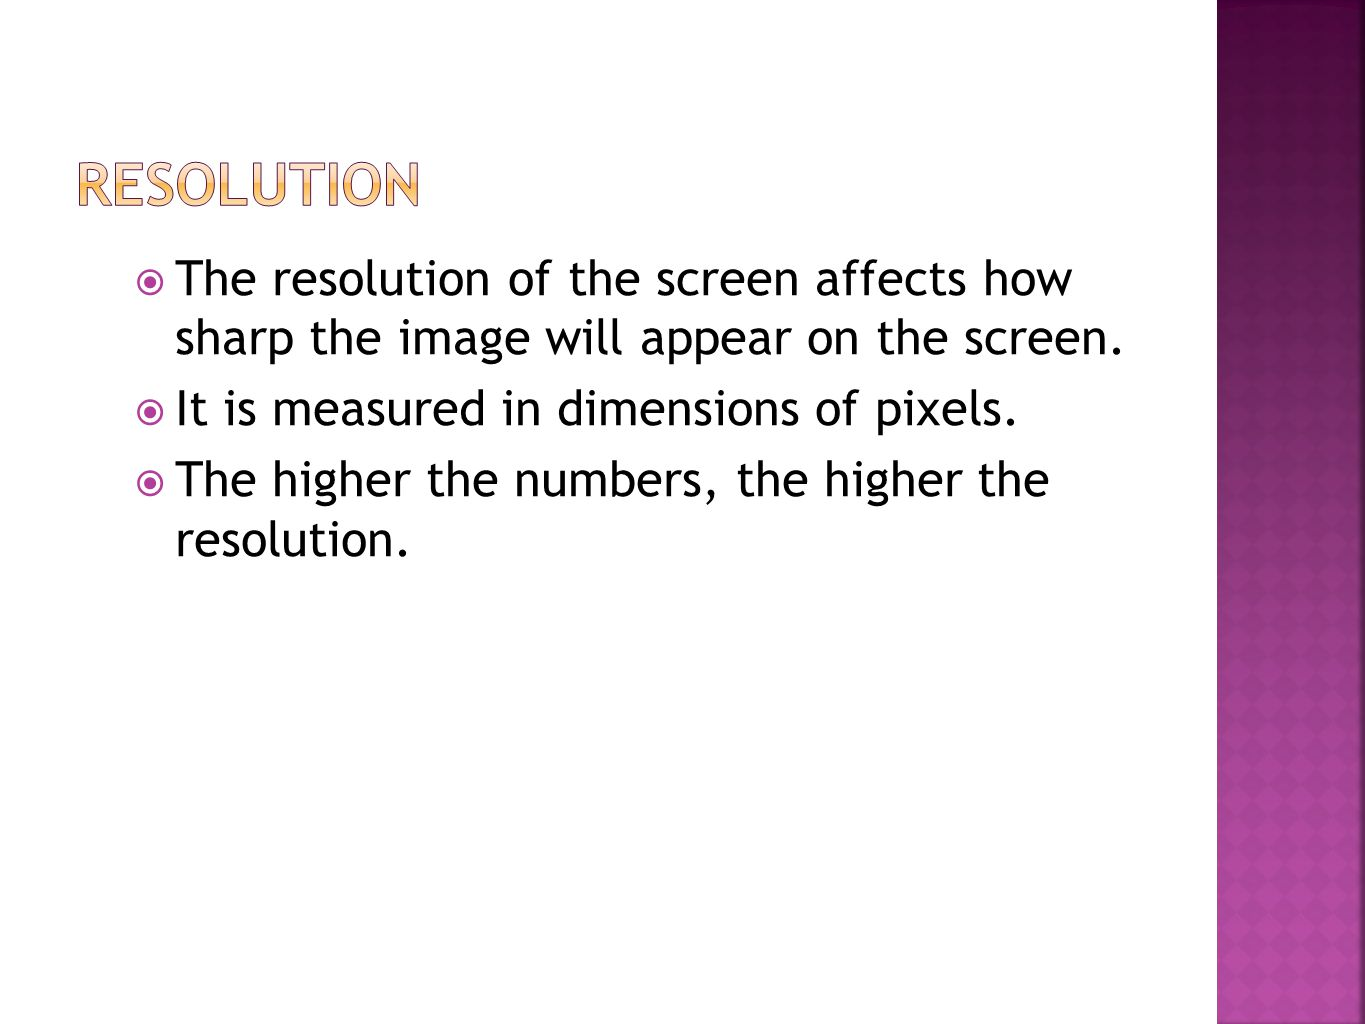  The resolution of the screen affects how sharp the image will appear on the screen.